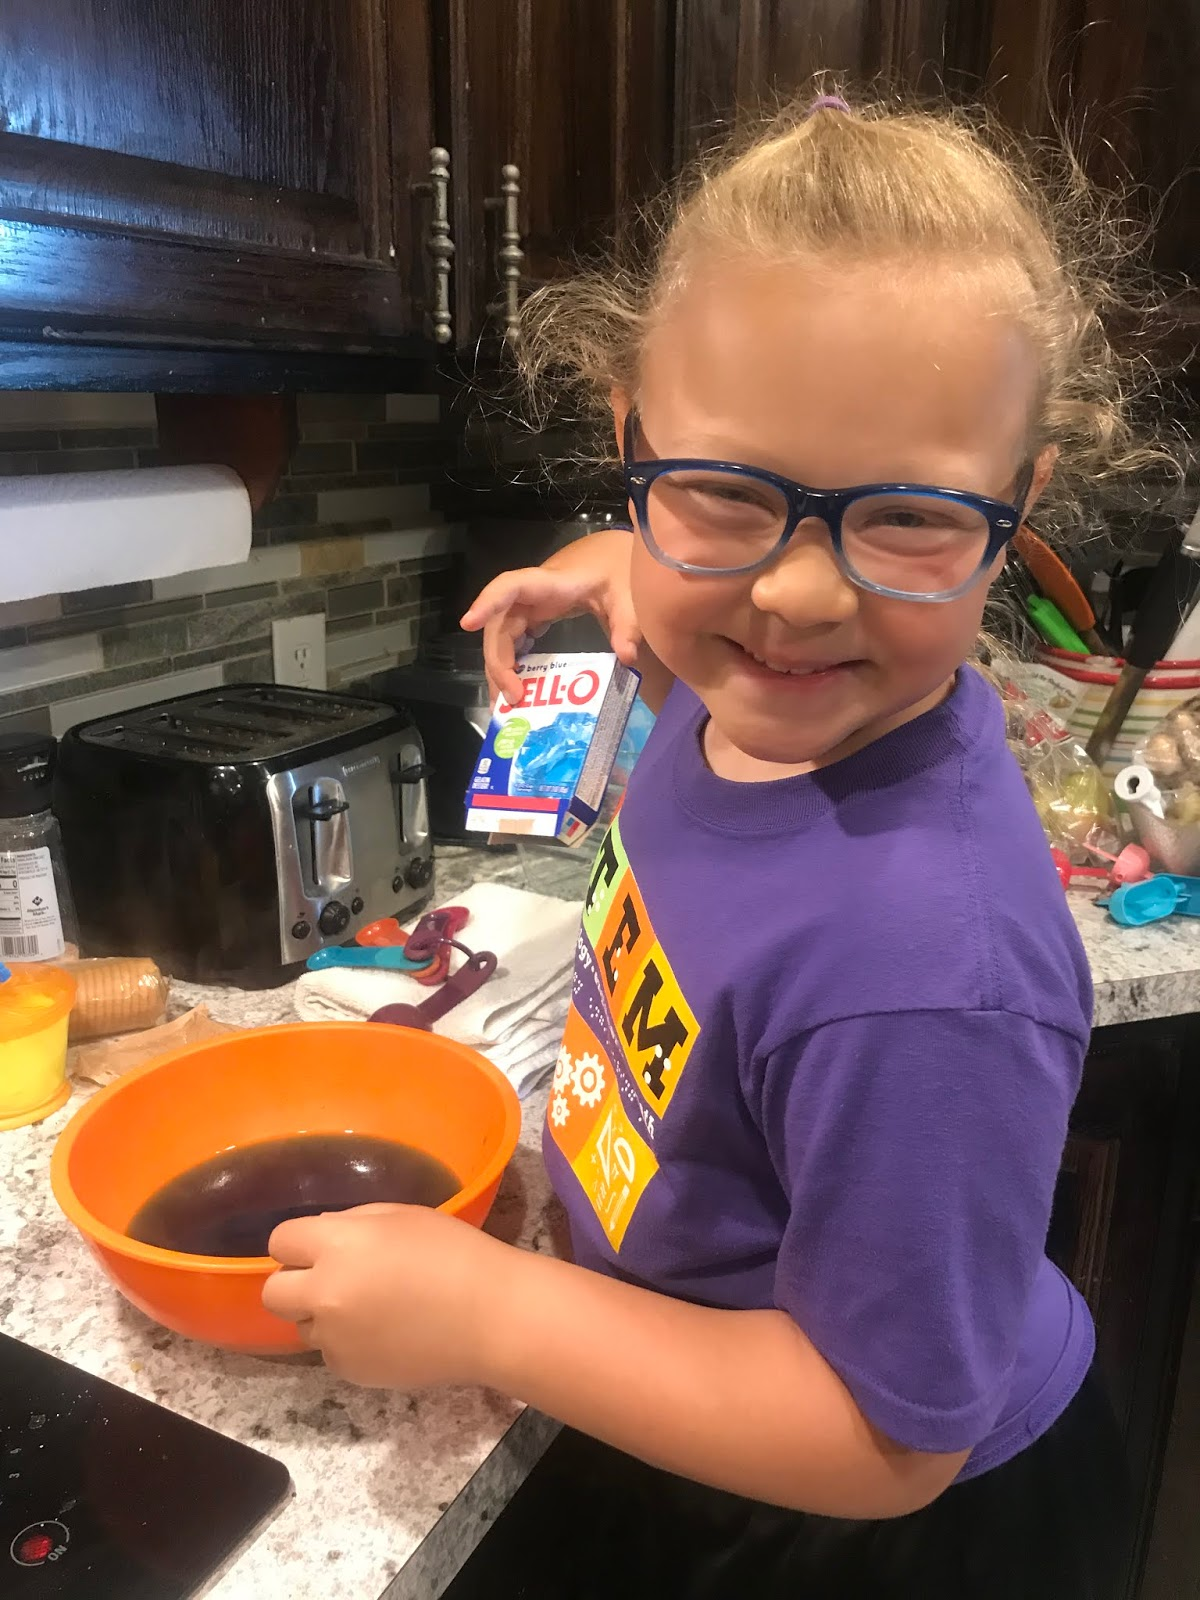 a girl smiles and holds a Jell-o box as she mixes ingredients